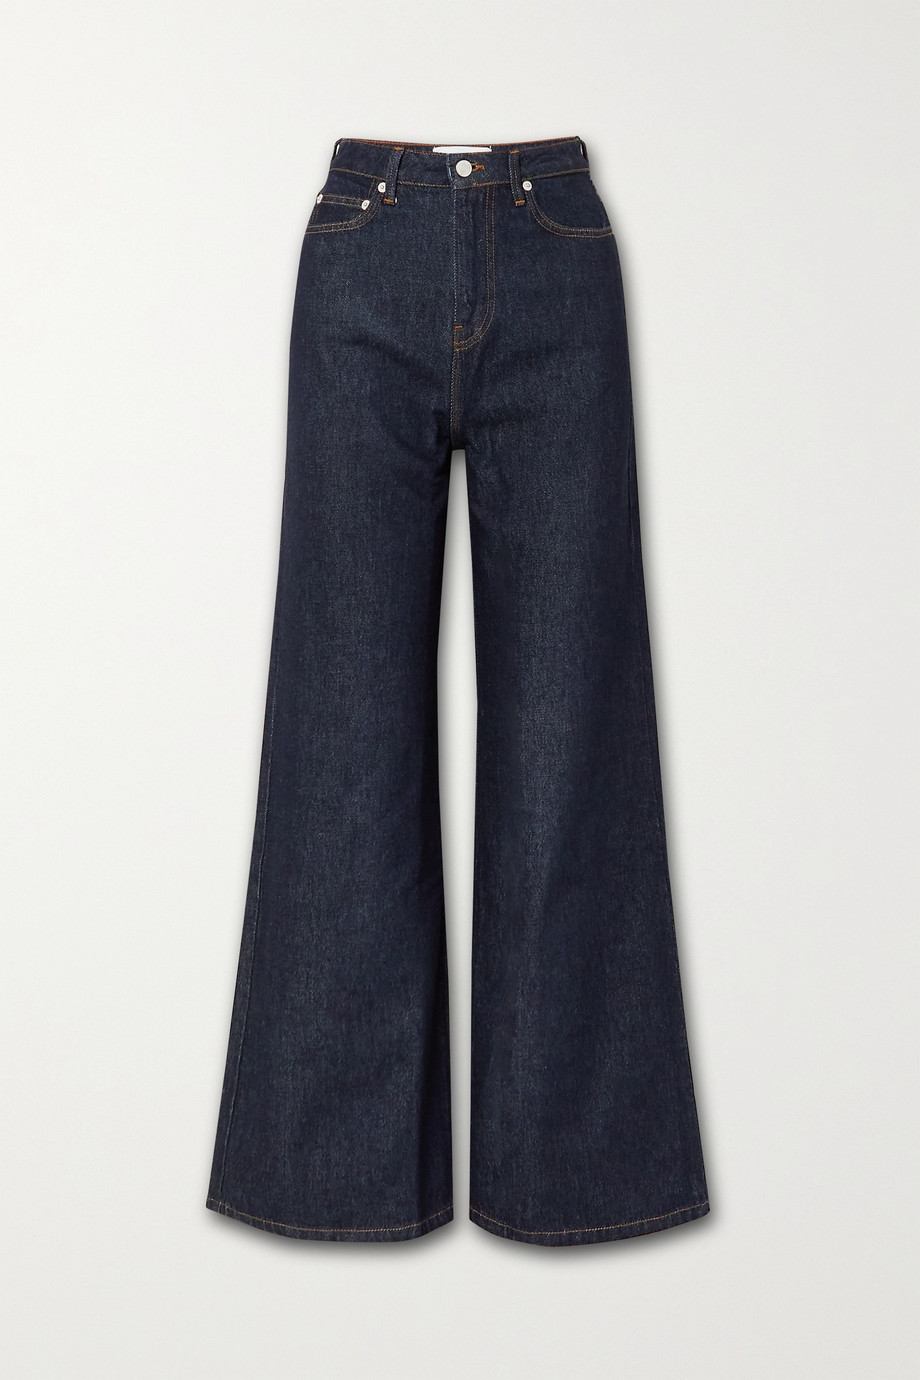 OFFICINE GÉNÉRALE Romy high-rise wide-leg denim jeans